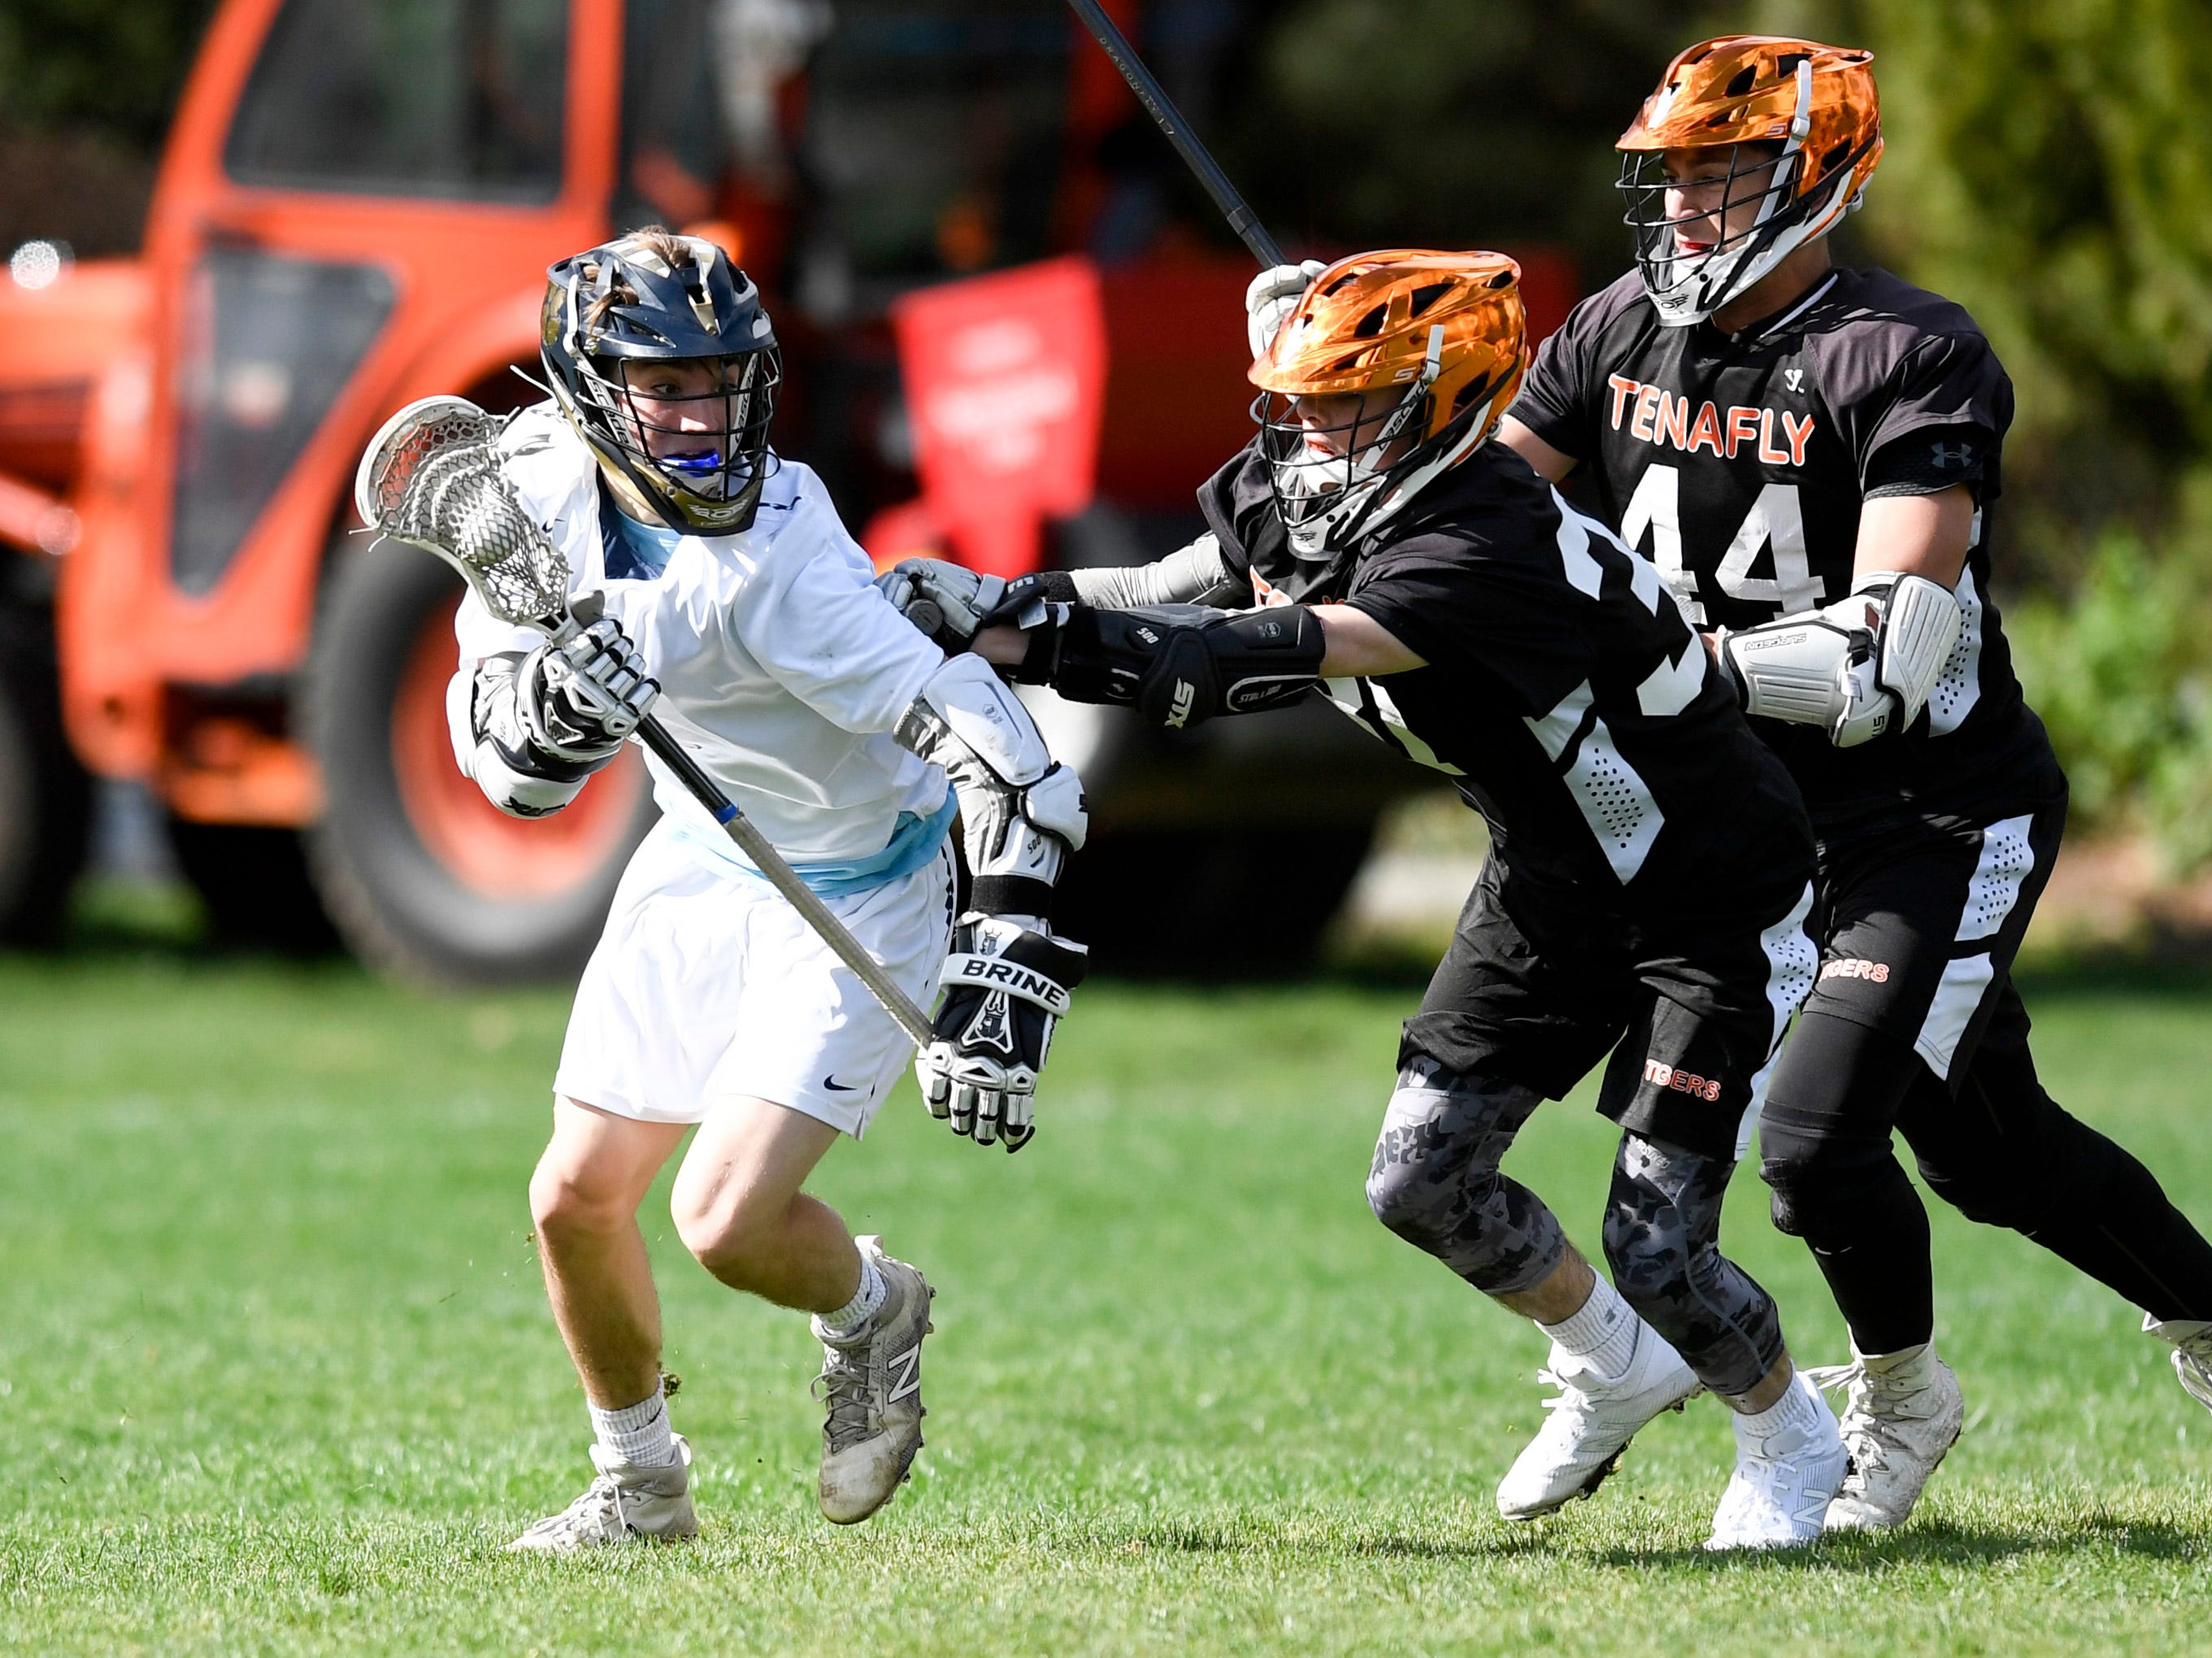 Dwight Englewood's Gavin Malhame, left, faces pressure from Tenafly defenders on Monday, April 15, 2019, in Englewood.